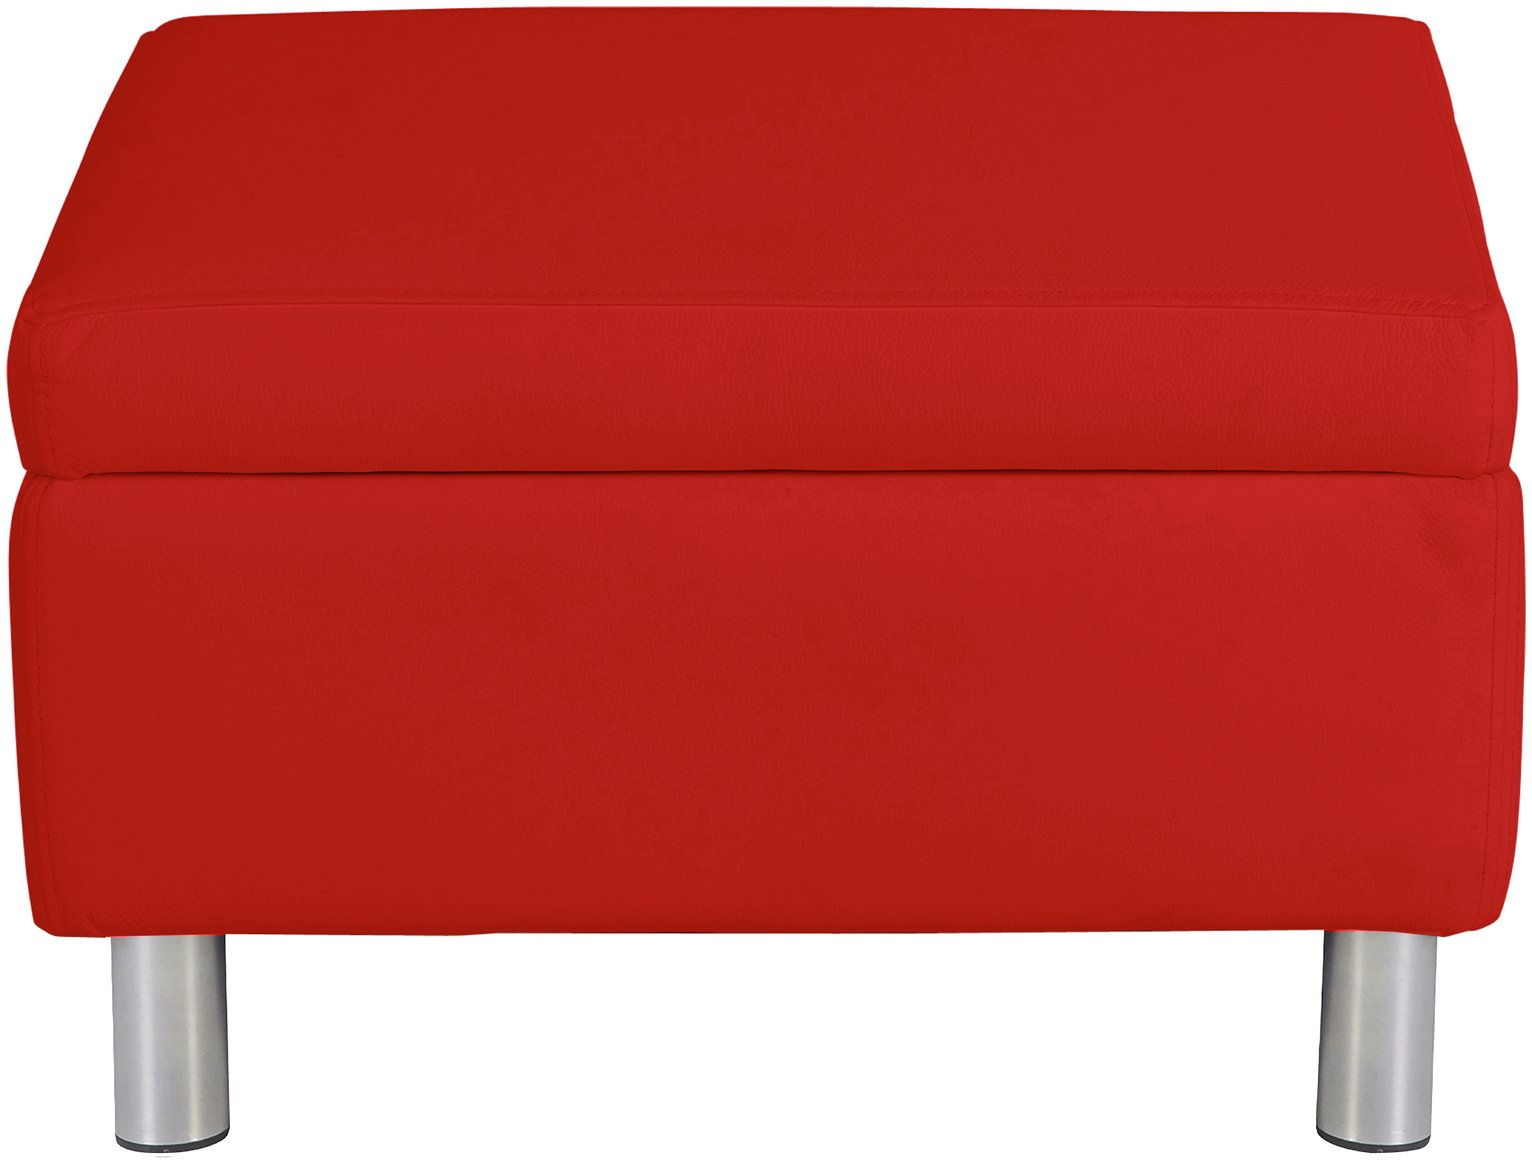 Argos Home Moda Faux Leather Storage Footstool Red